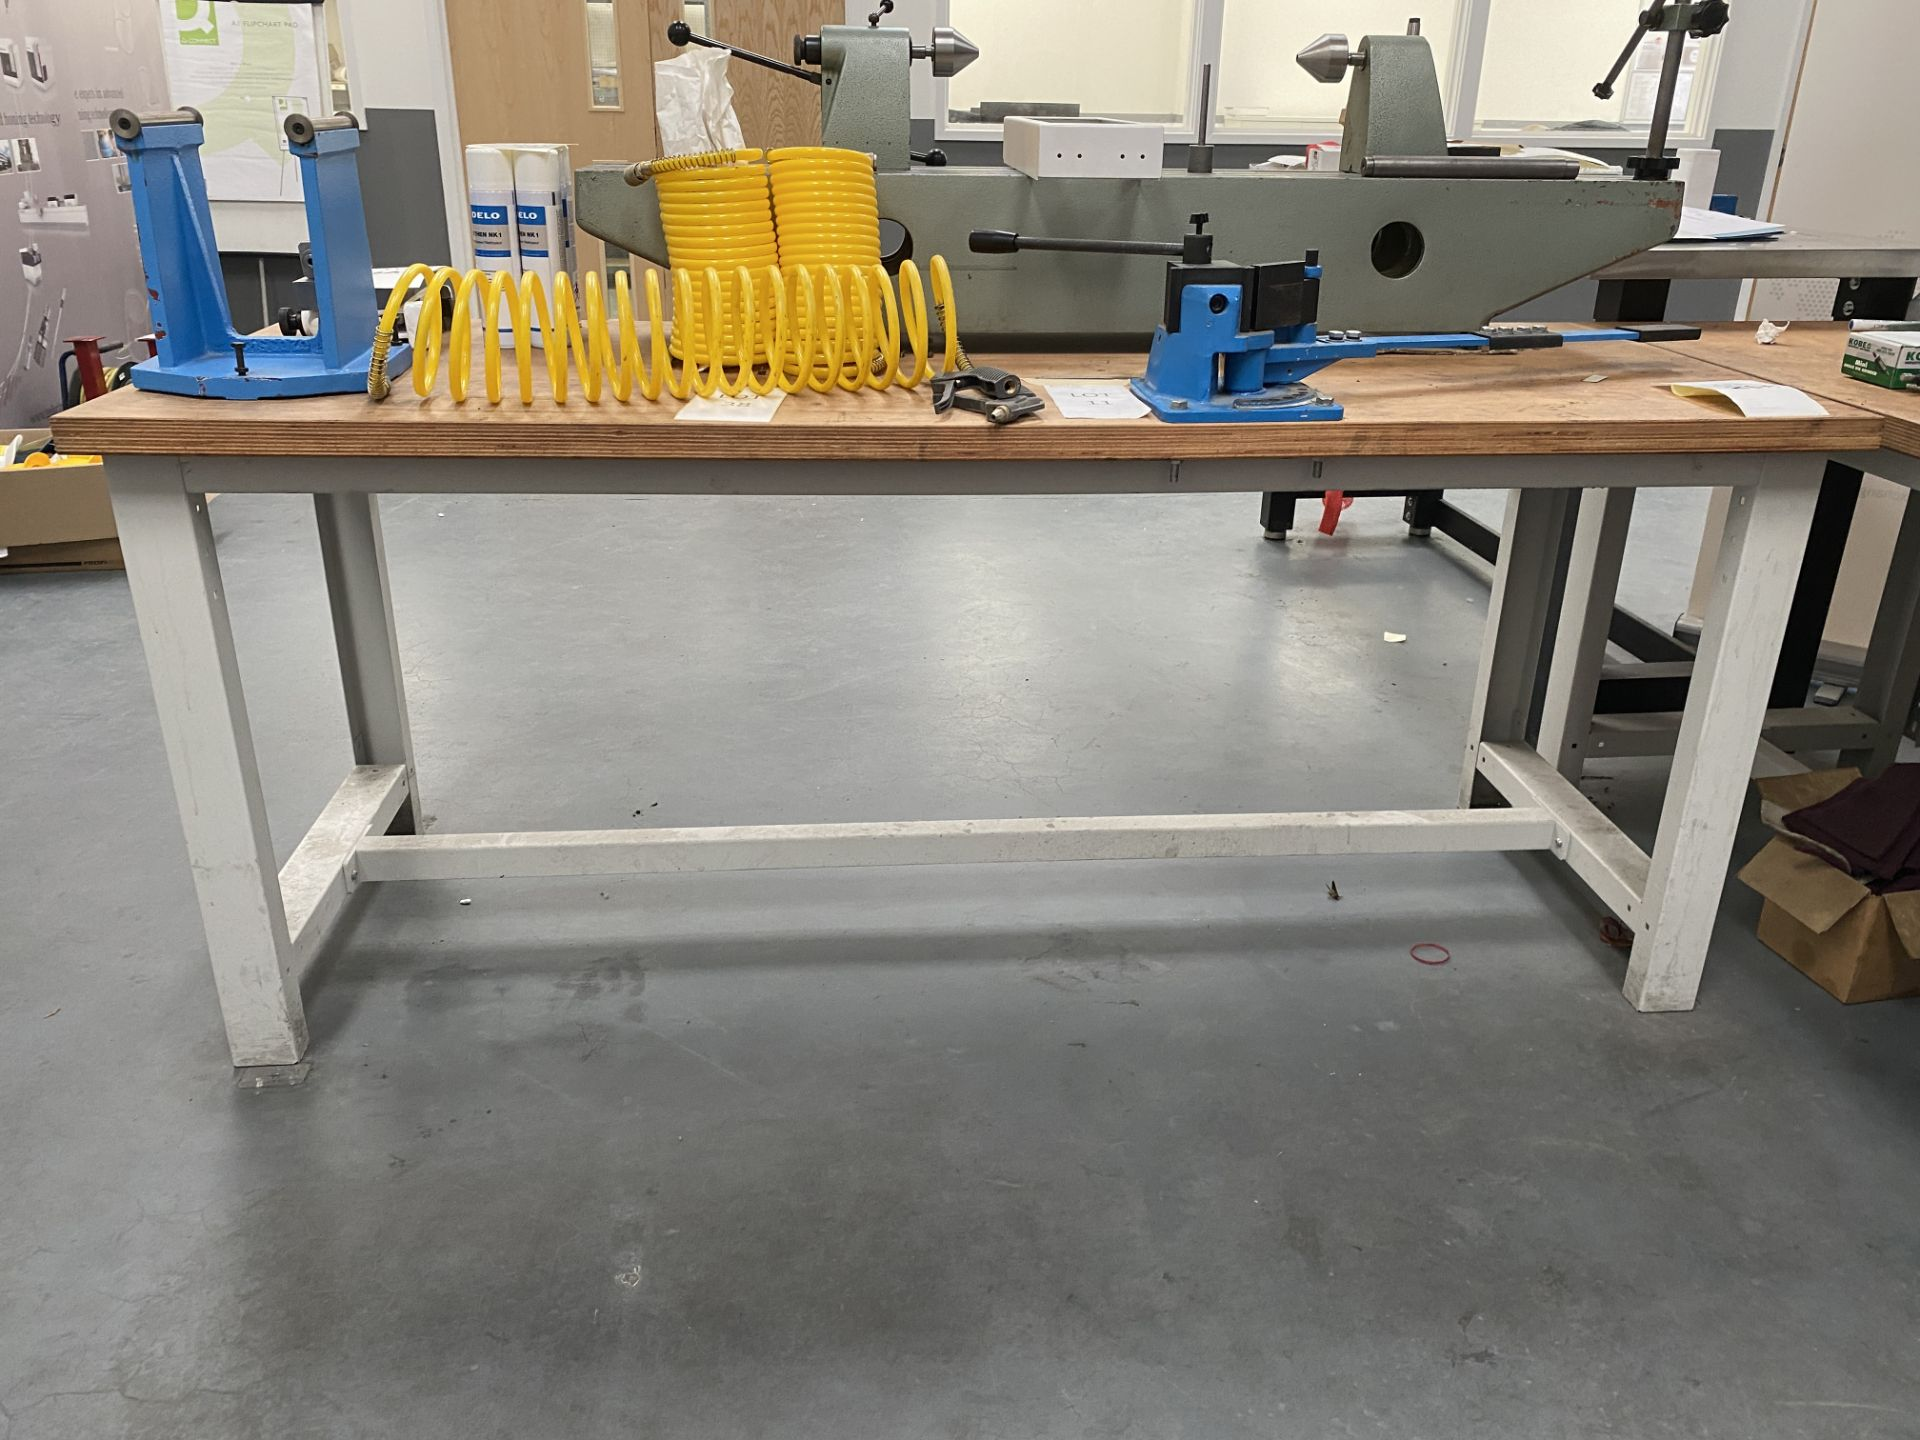 Workbench Size 2m X 0.76m X 0.84m (Does Not Include Contents) - Image 2 of 4